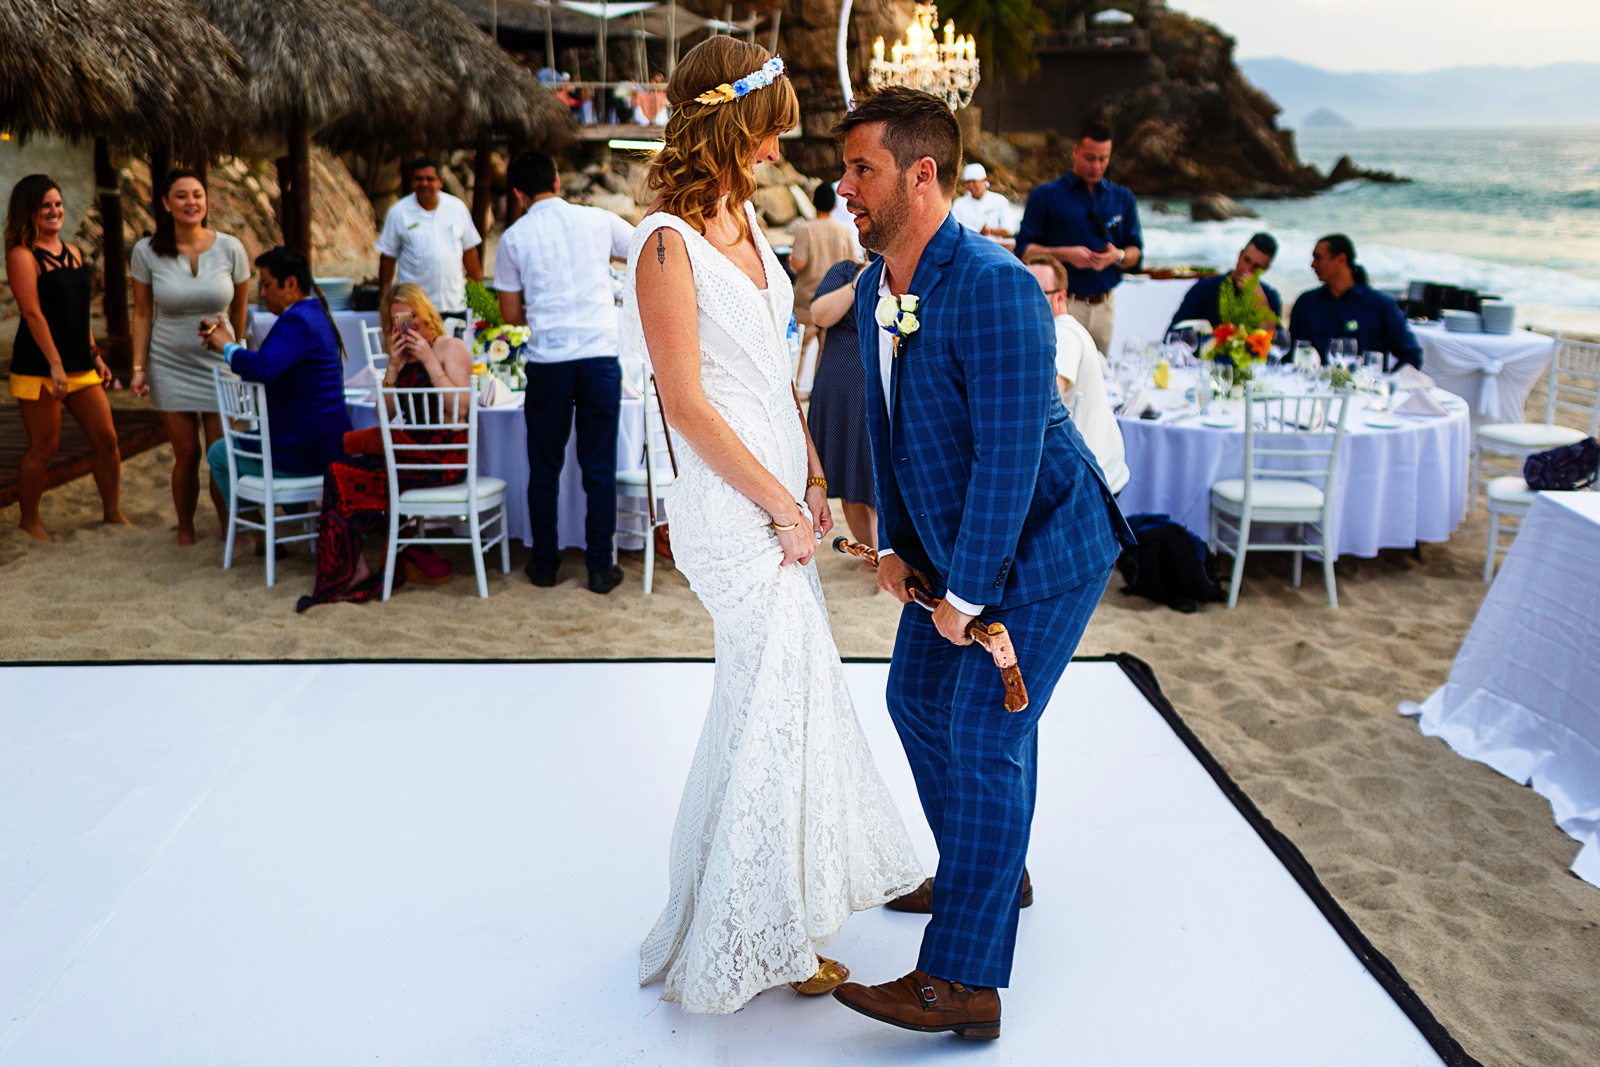 Bride and groom dance as part of their entrance into the reception on the beach